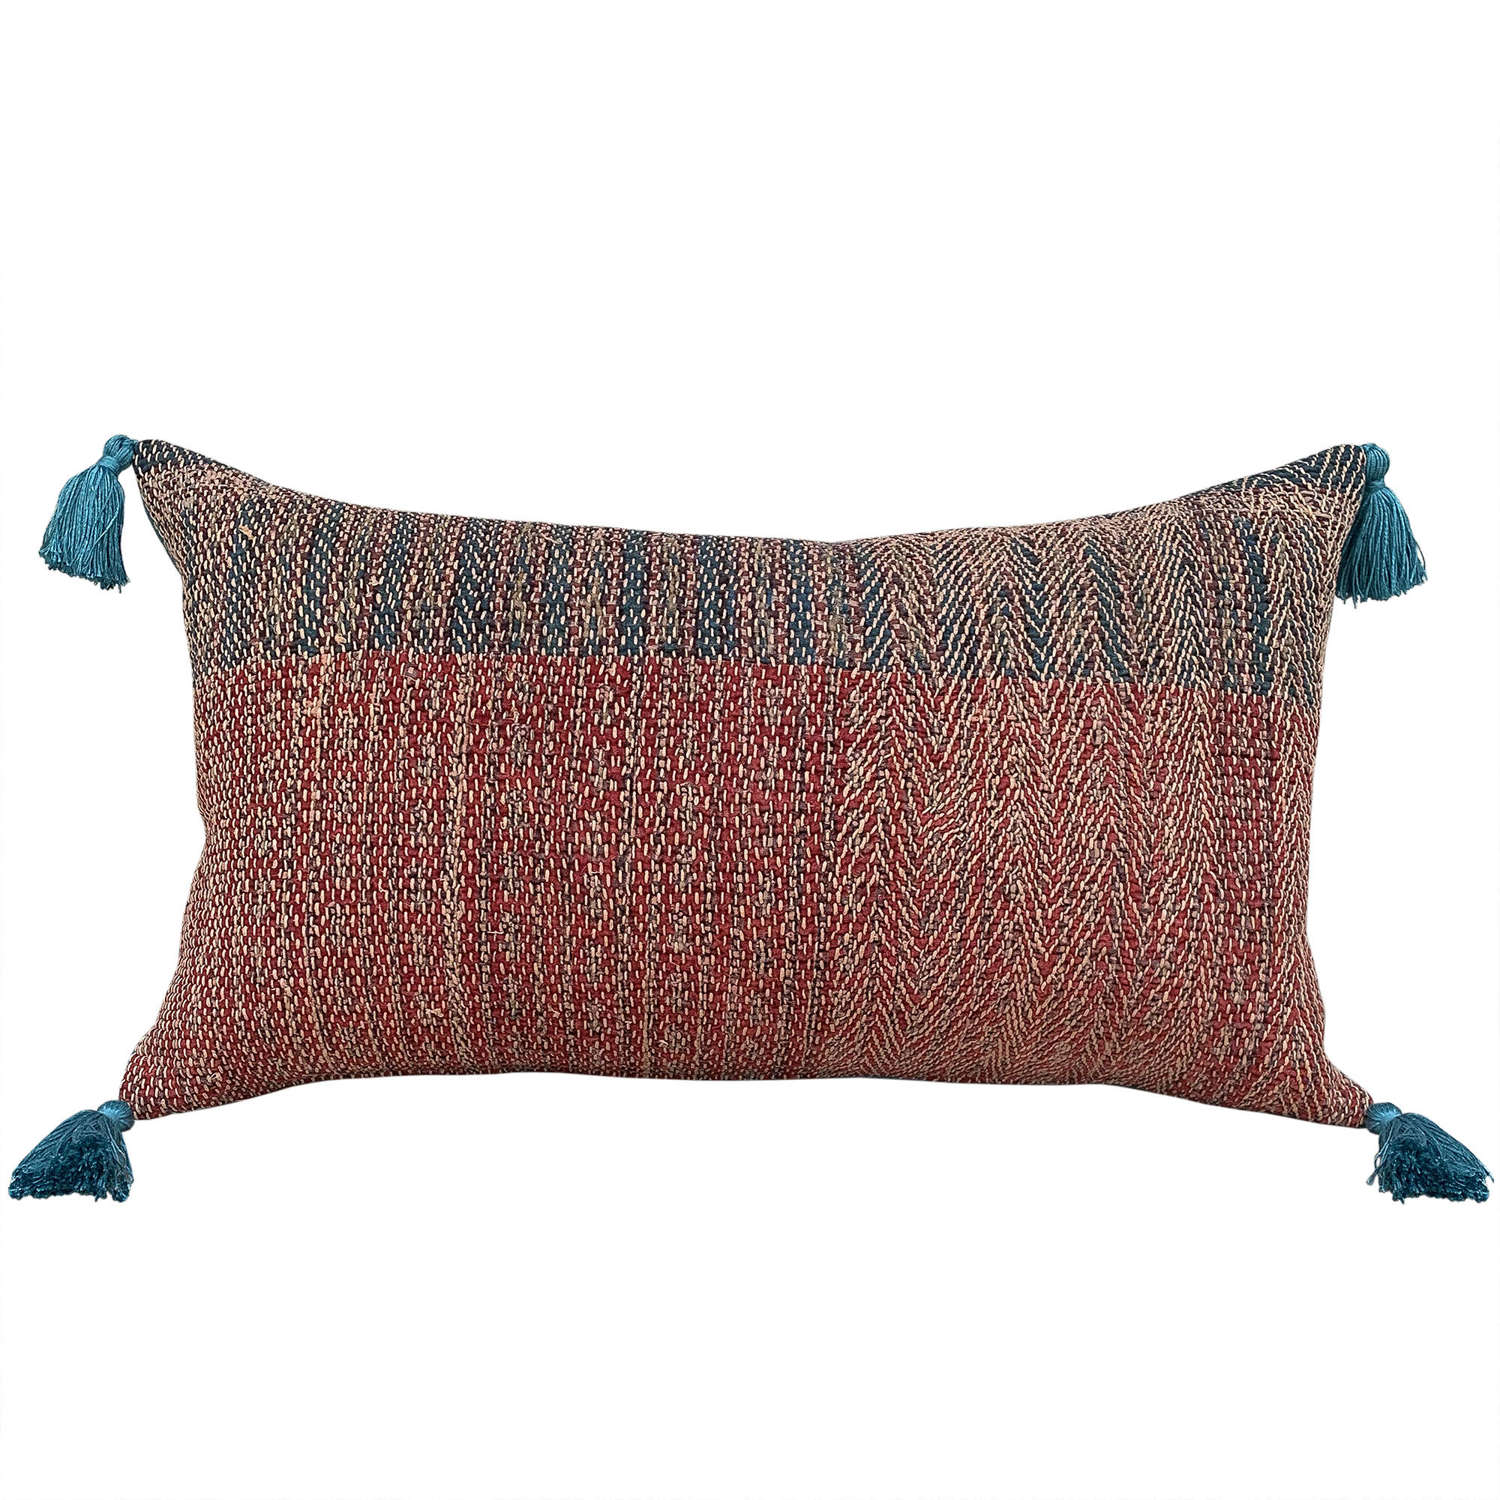 Banjara cushion with teal tassels